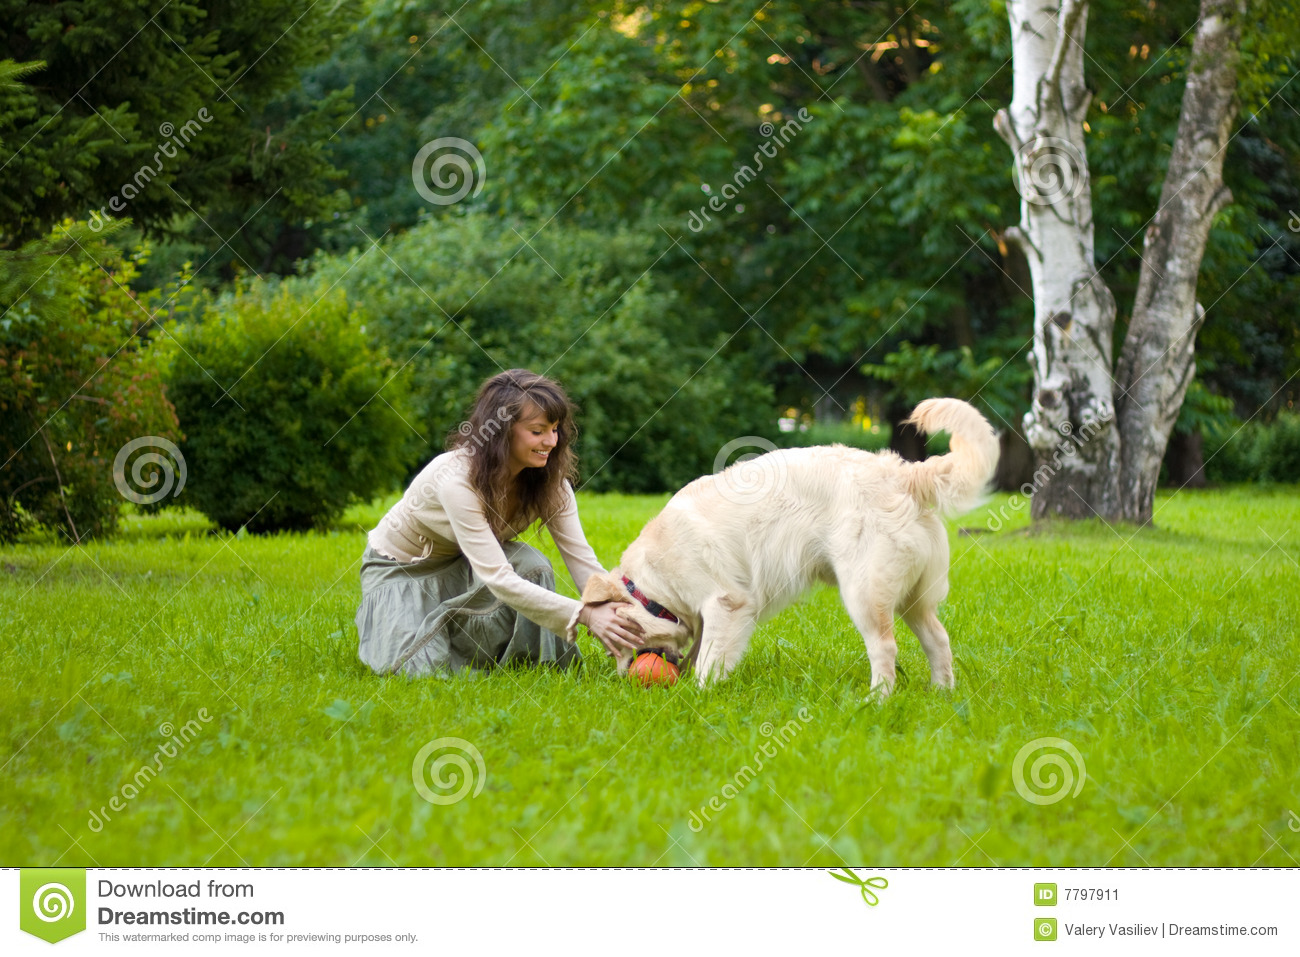 Girl plays ball with a dog